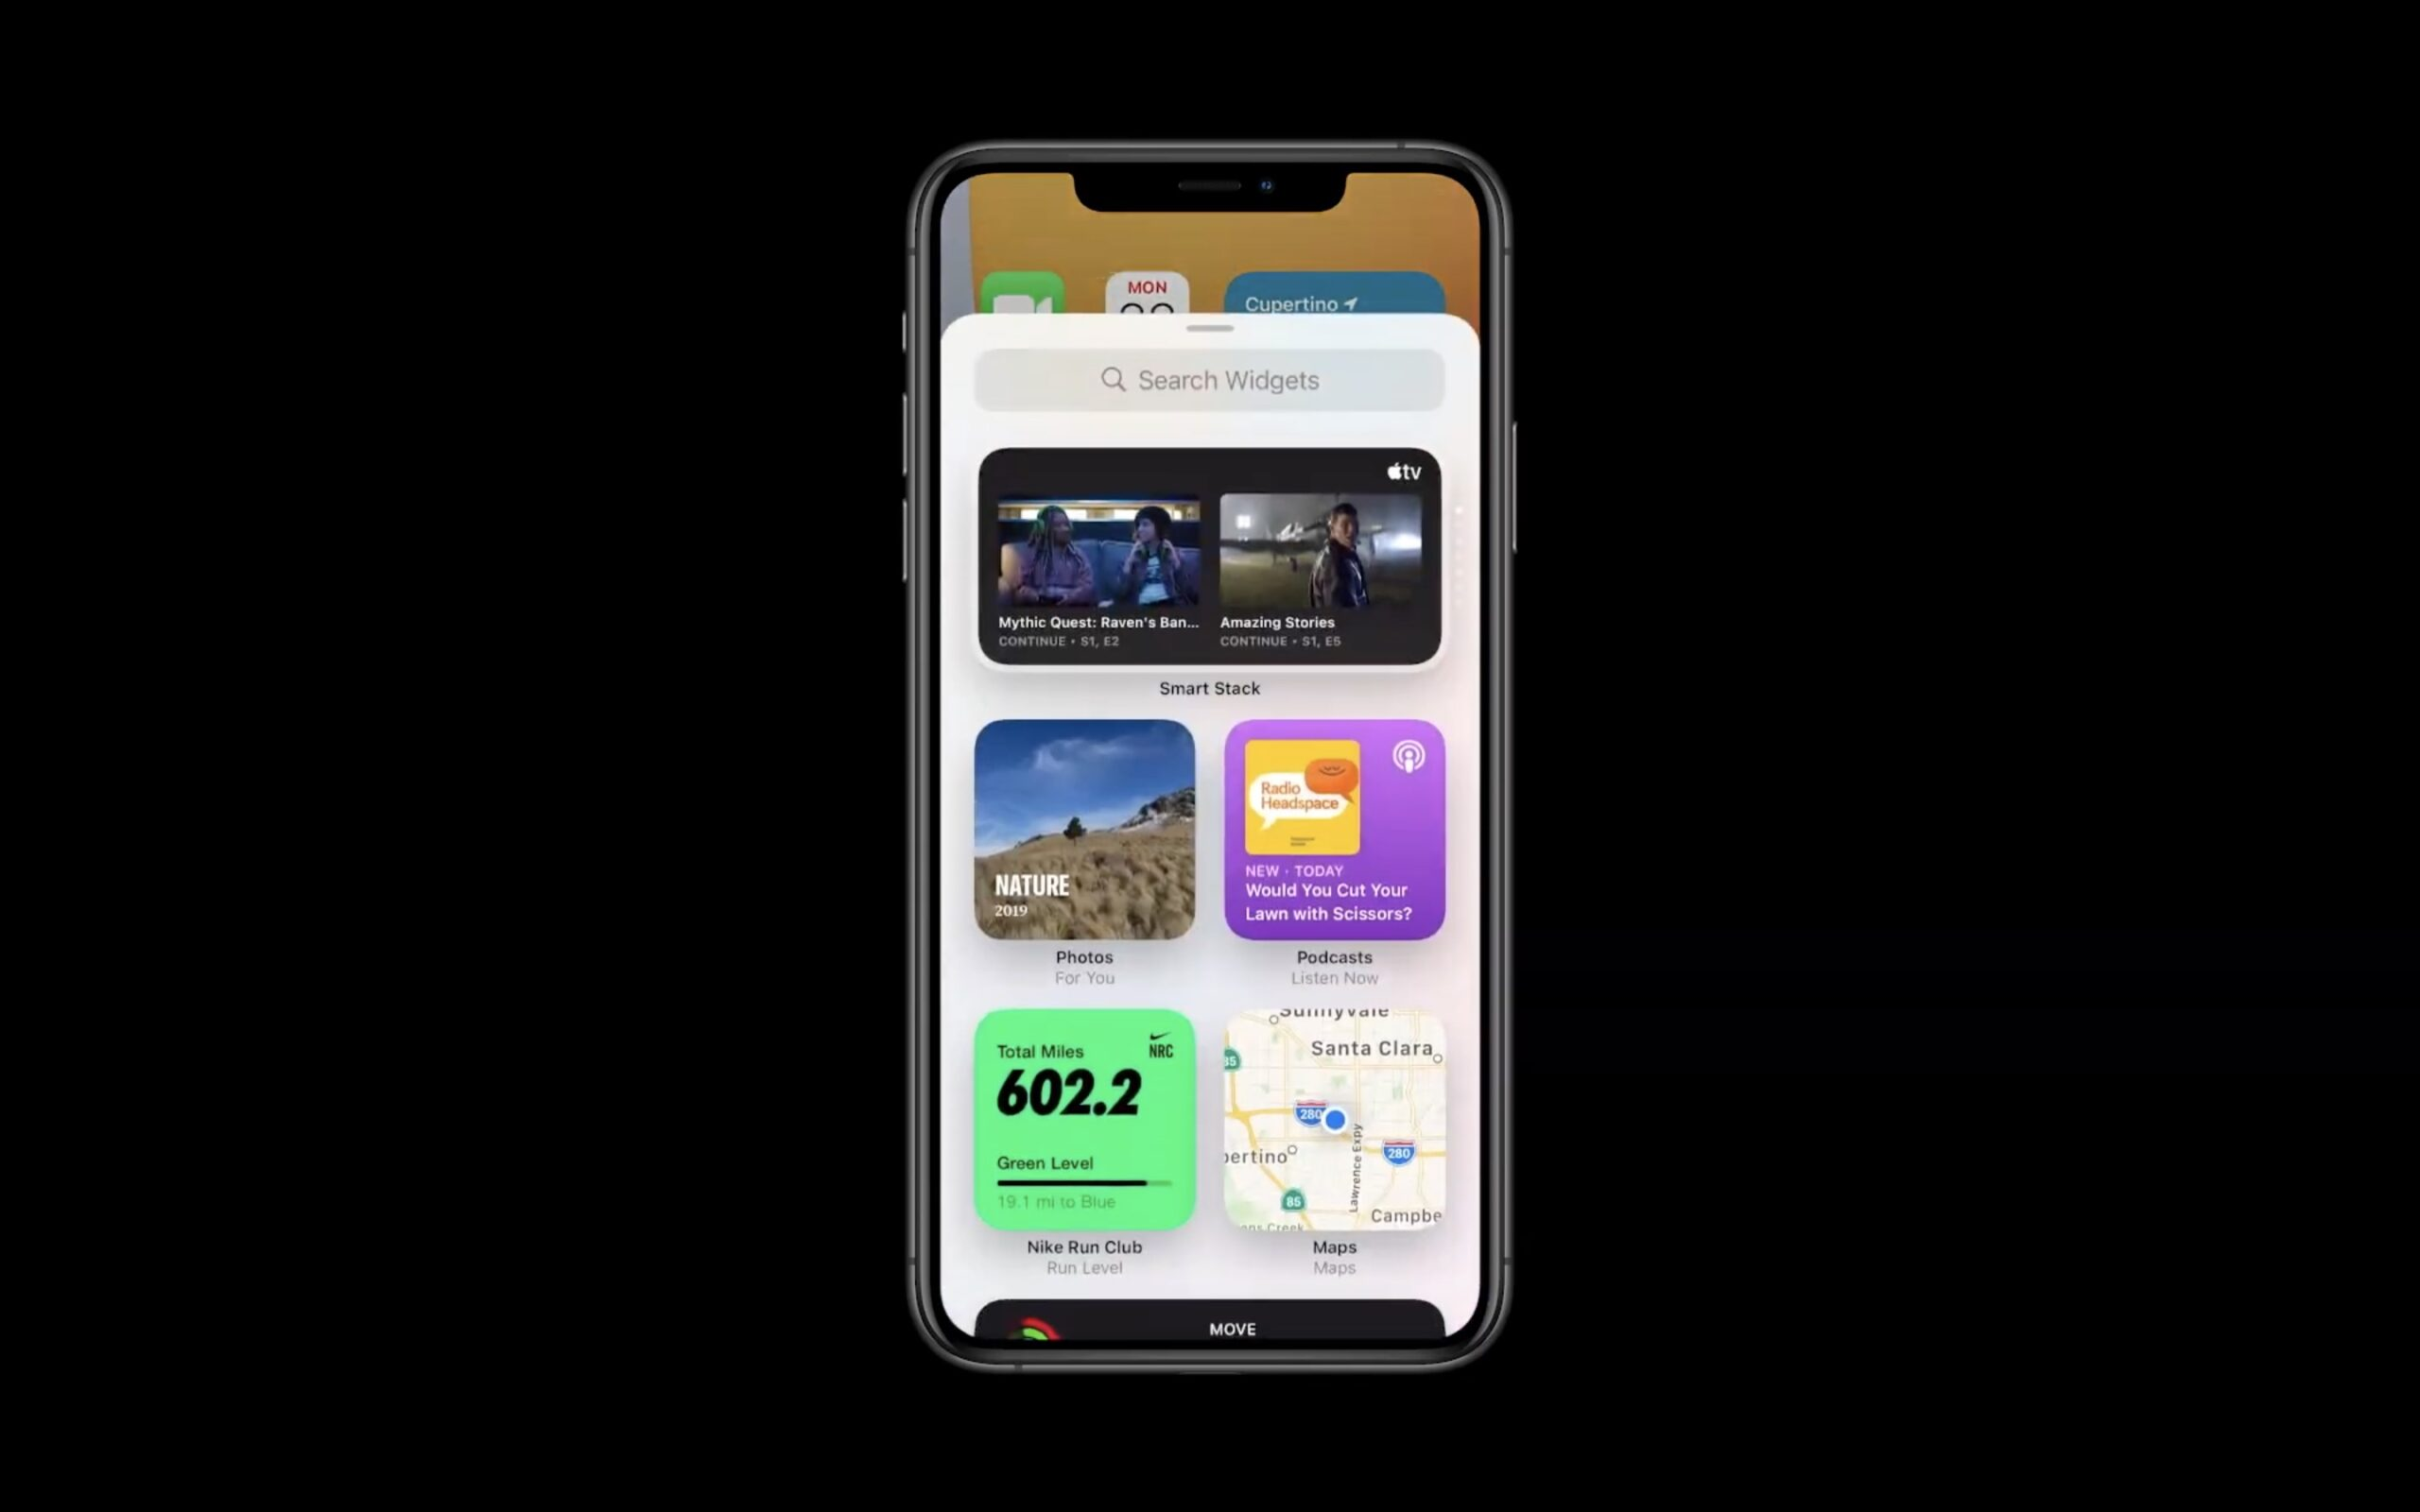 iOS 14 Announced With New Home screen, Widgets, and ...